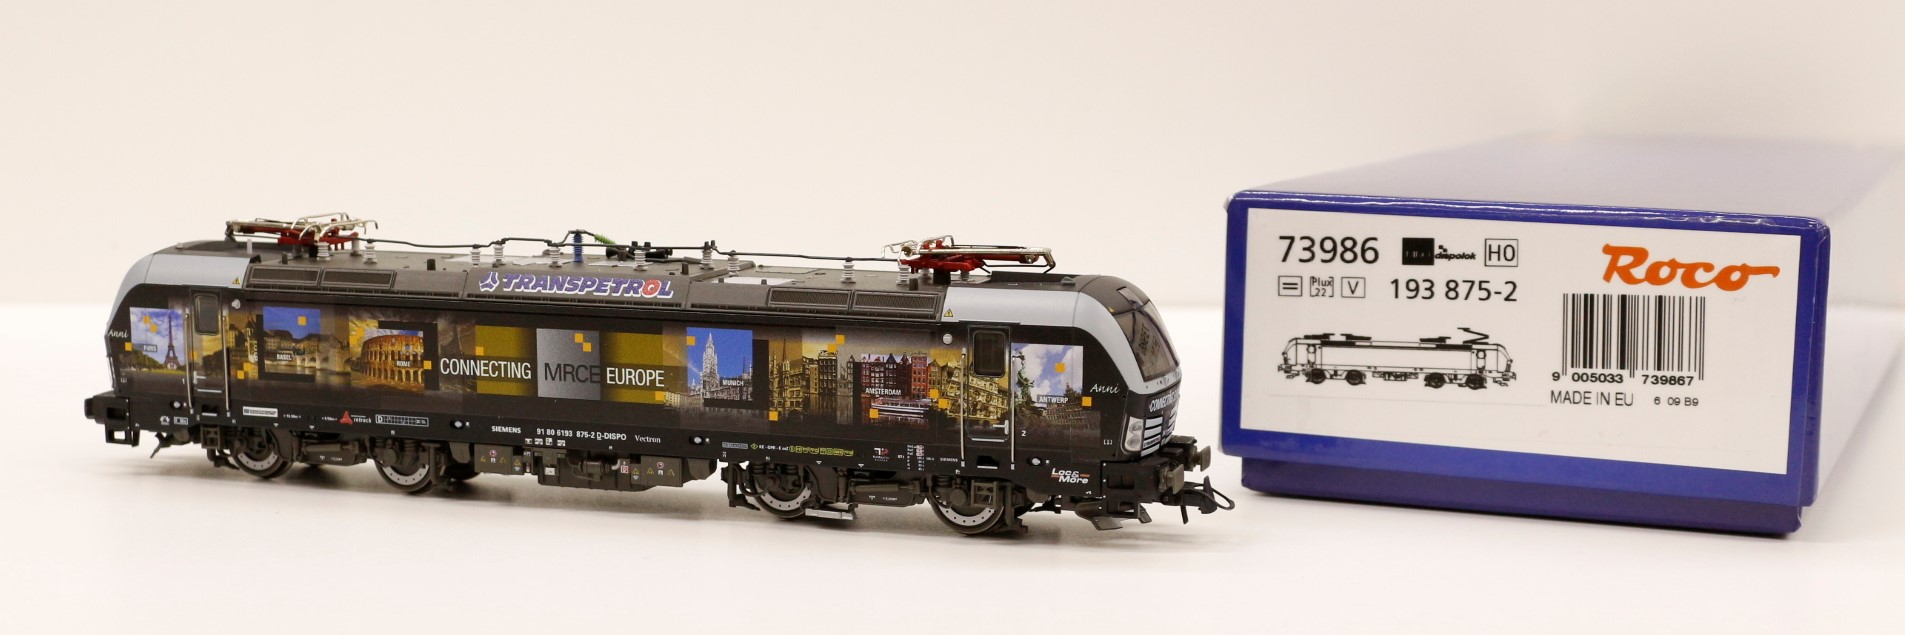 73986 Roco HO Locomotiva elettrica 193 MRCE Loc and More